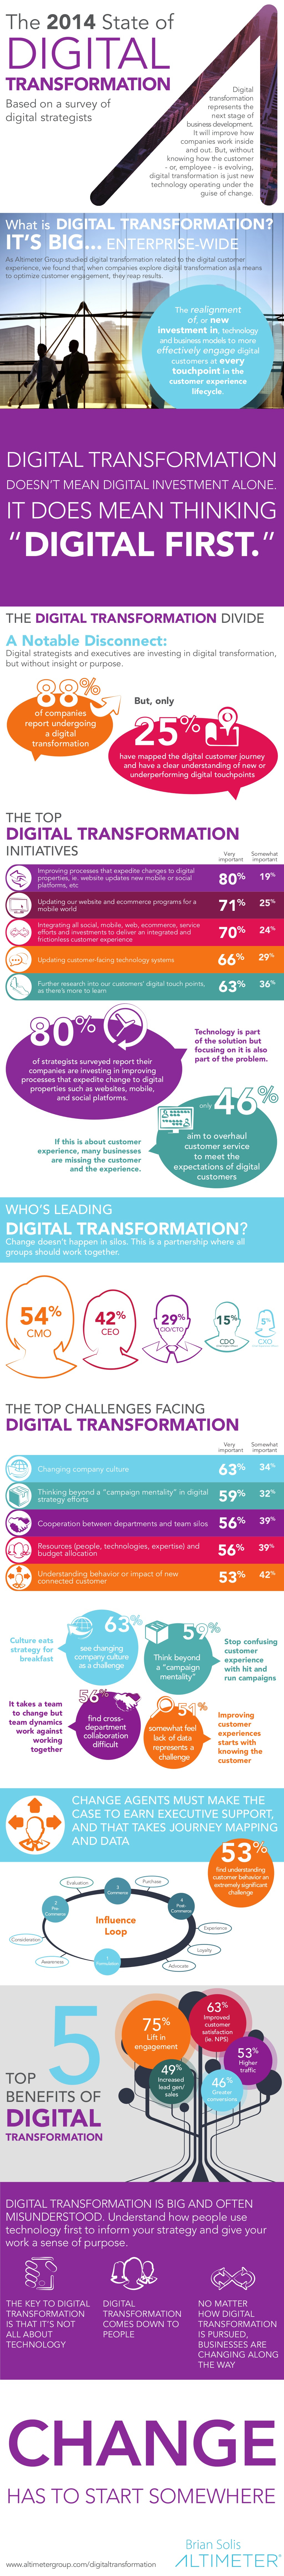 Infographic: The 2014 State of Digital Transformation